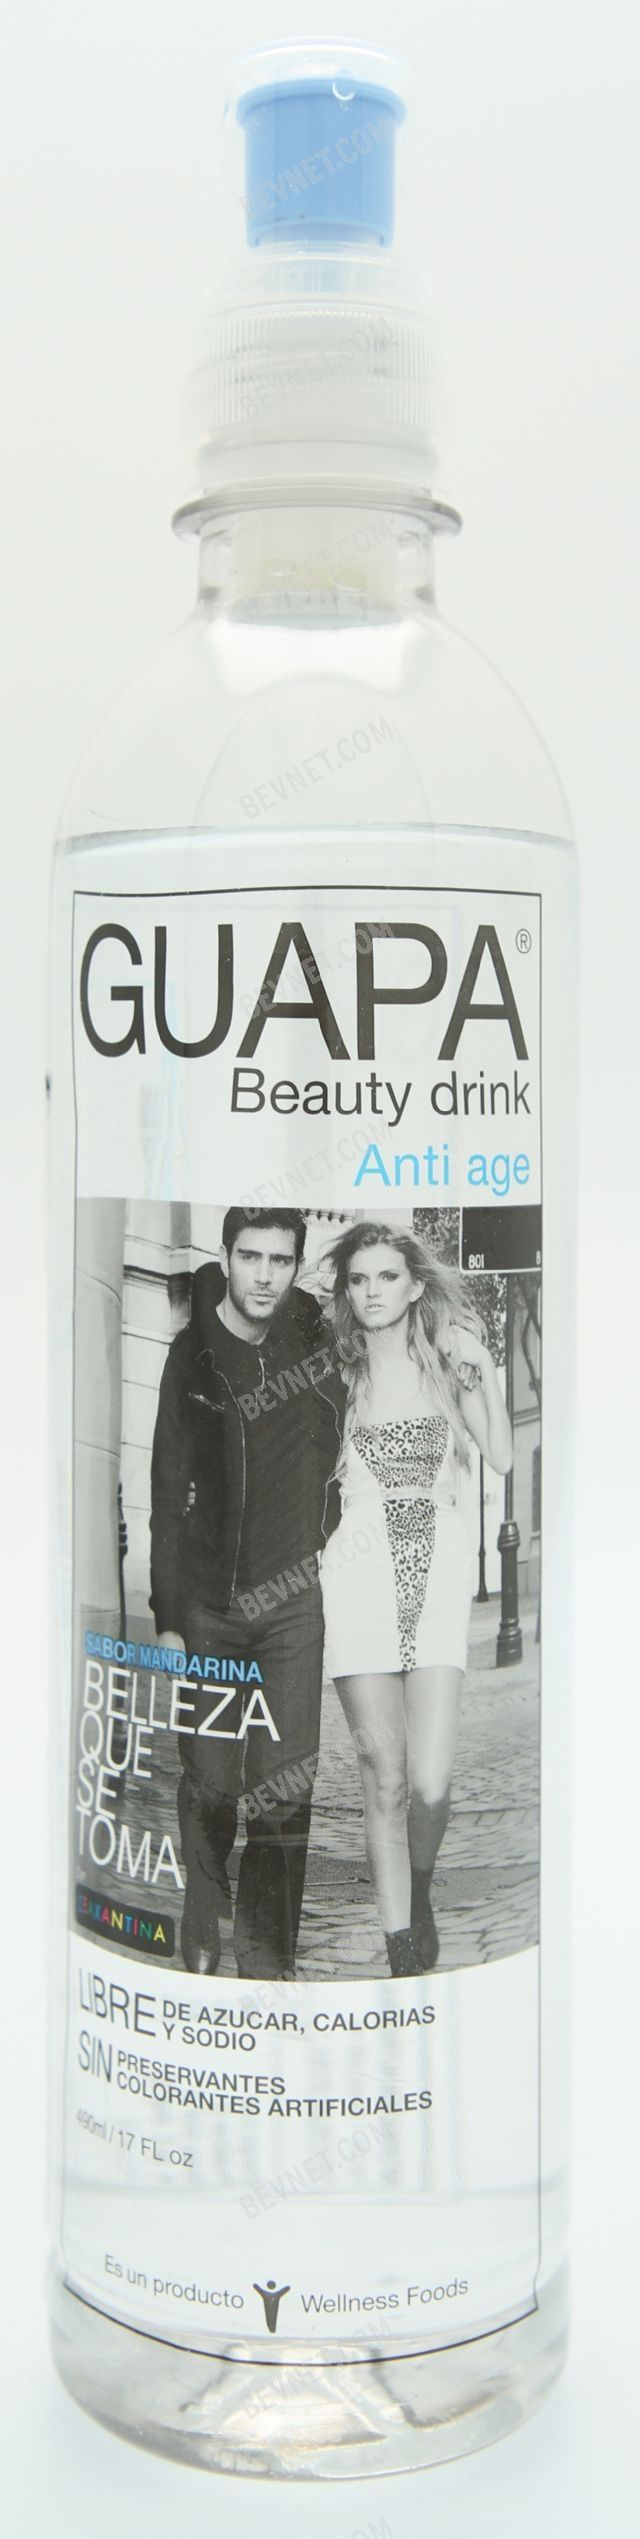 guapa beauty drink: